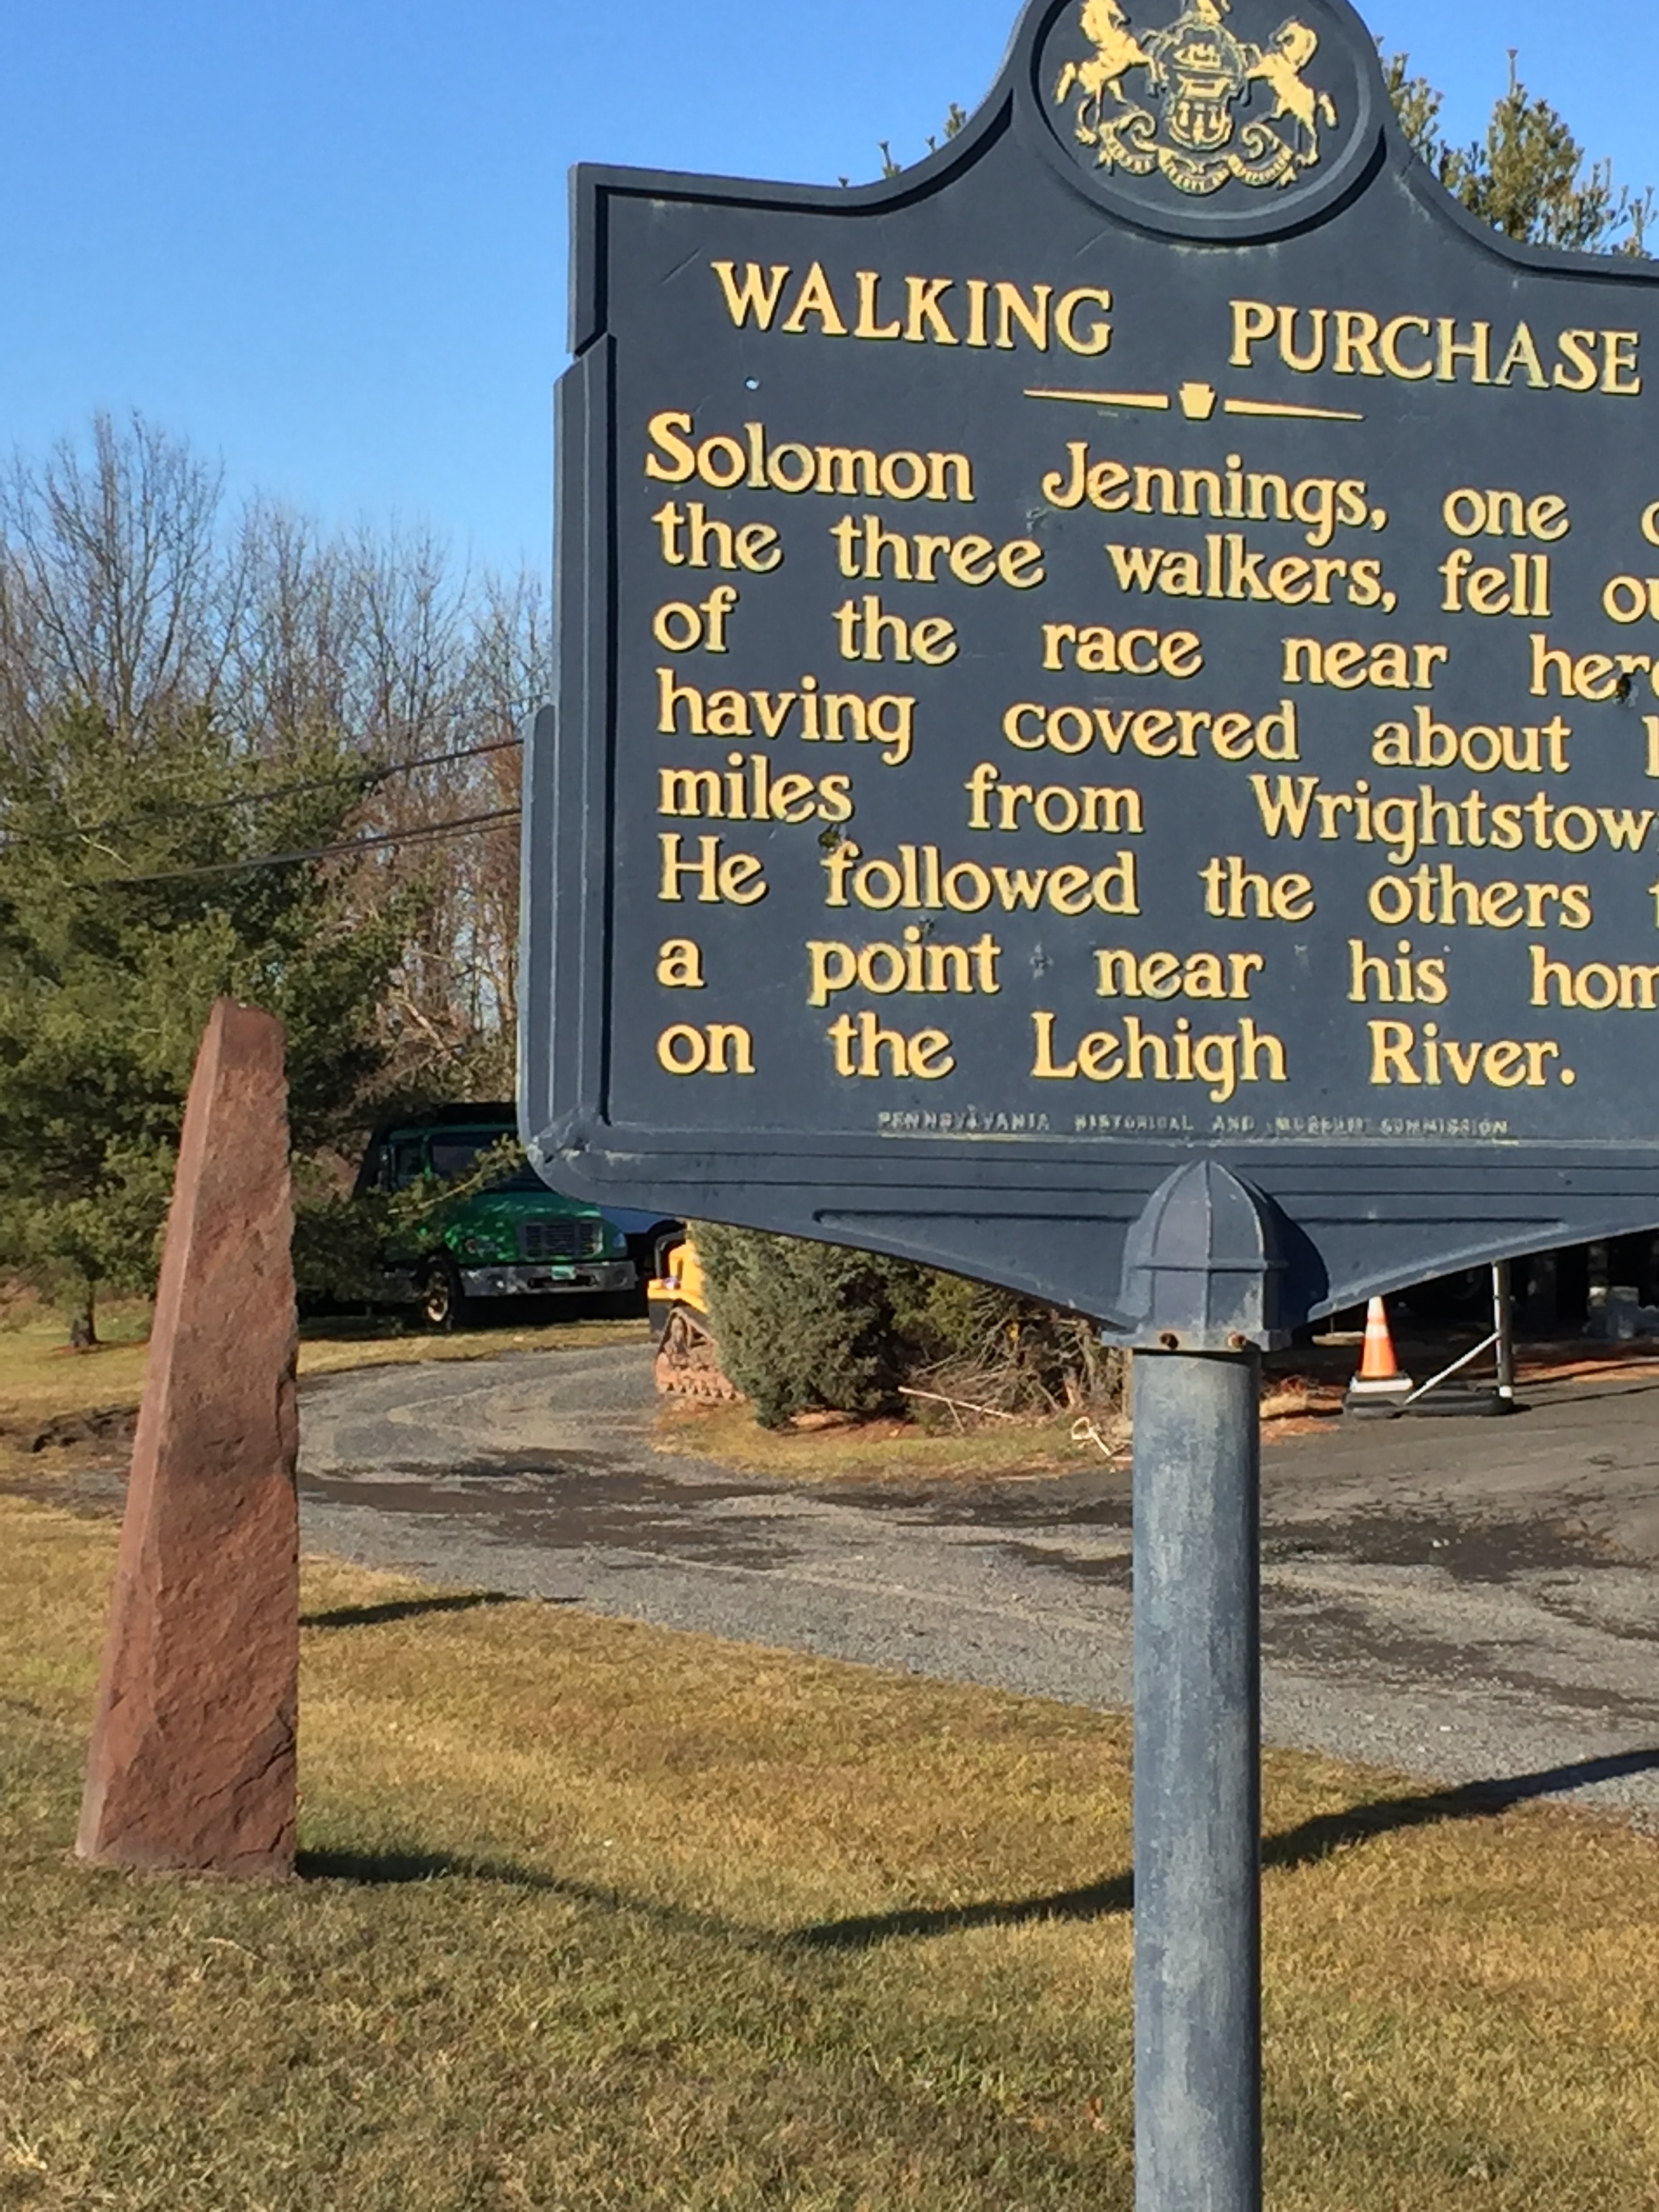 Just north of Ottsville, where 611 and Durham Road connect, an historical marker and obelisk mark the spot near where Solomon Jennings dropped out of the Walking Purchase.